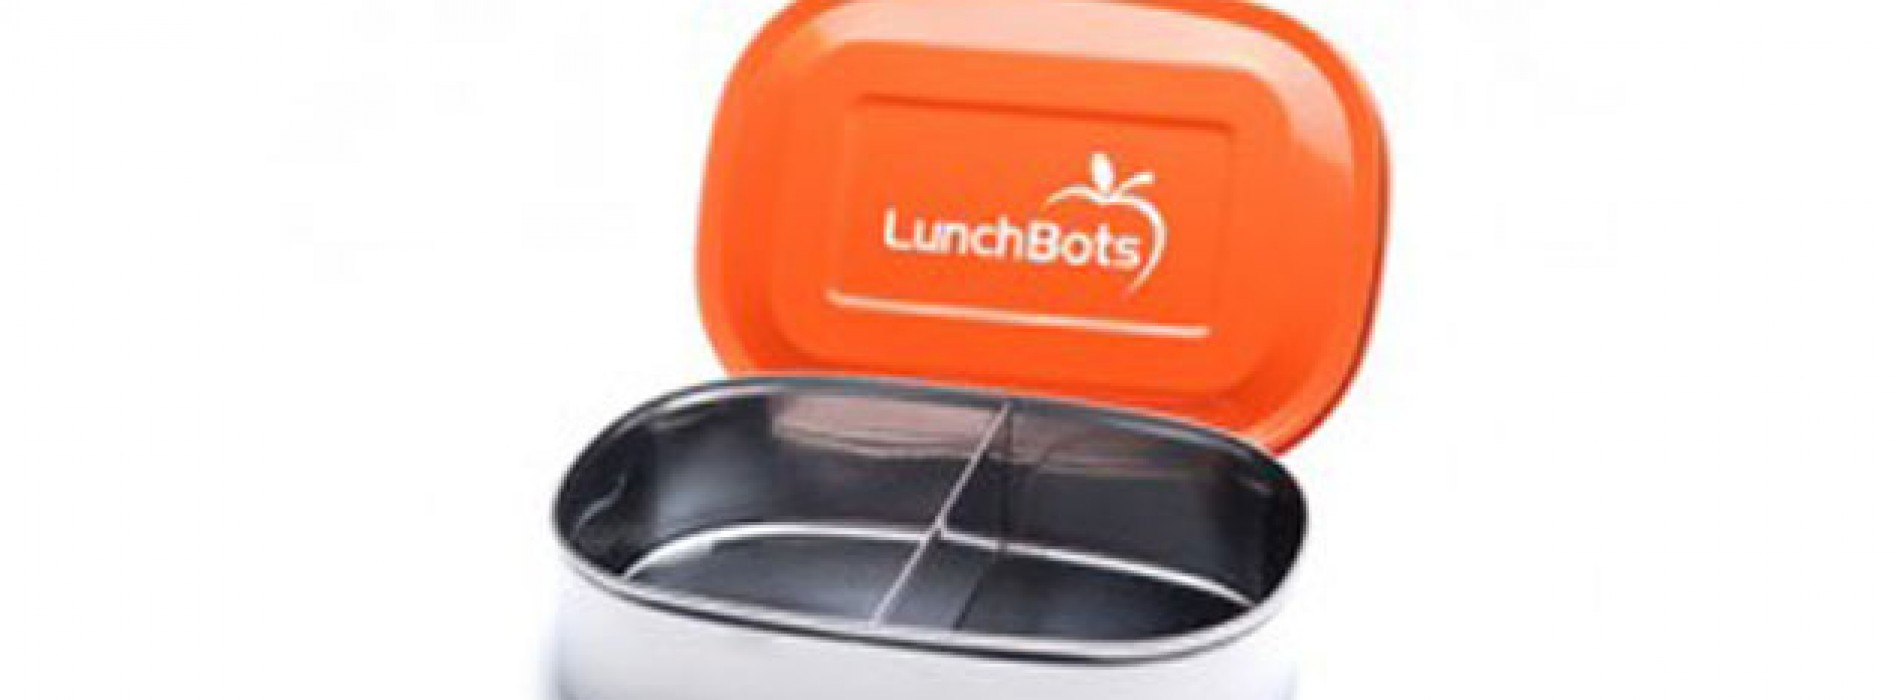 Sweet Stuff: Lunch Bots